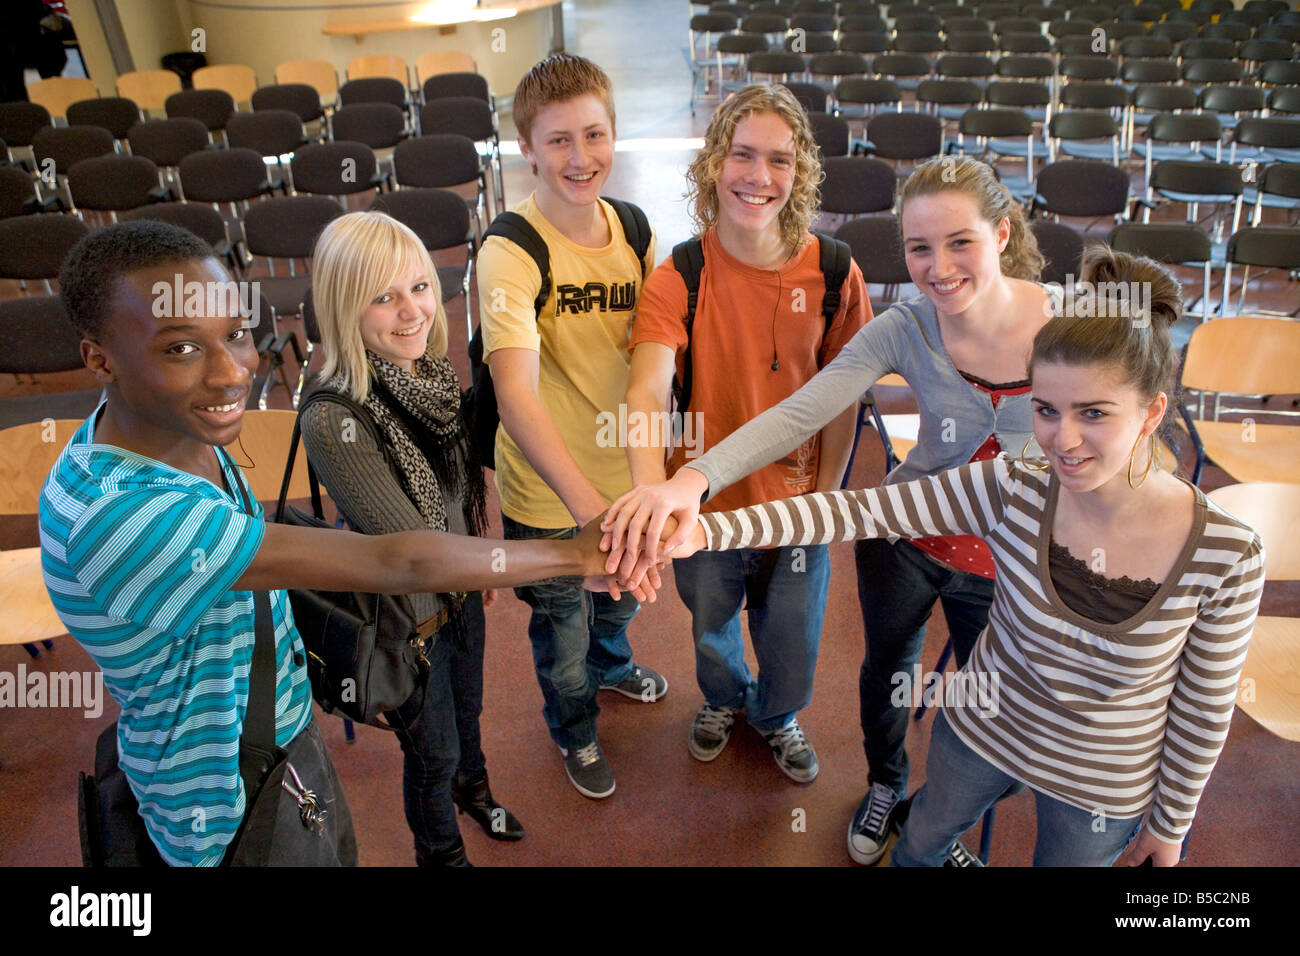 Group portrait of teenage boys and girls in the school hall - Stock Image